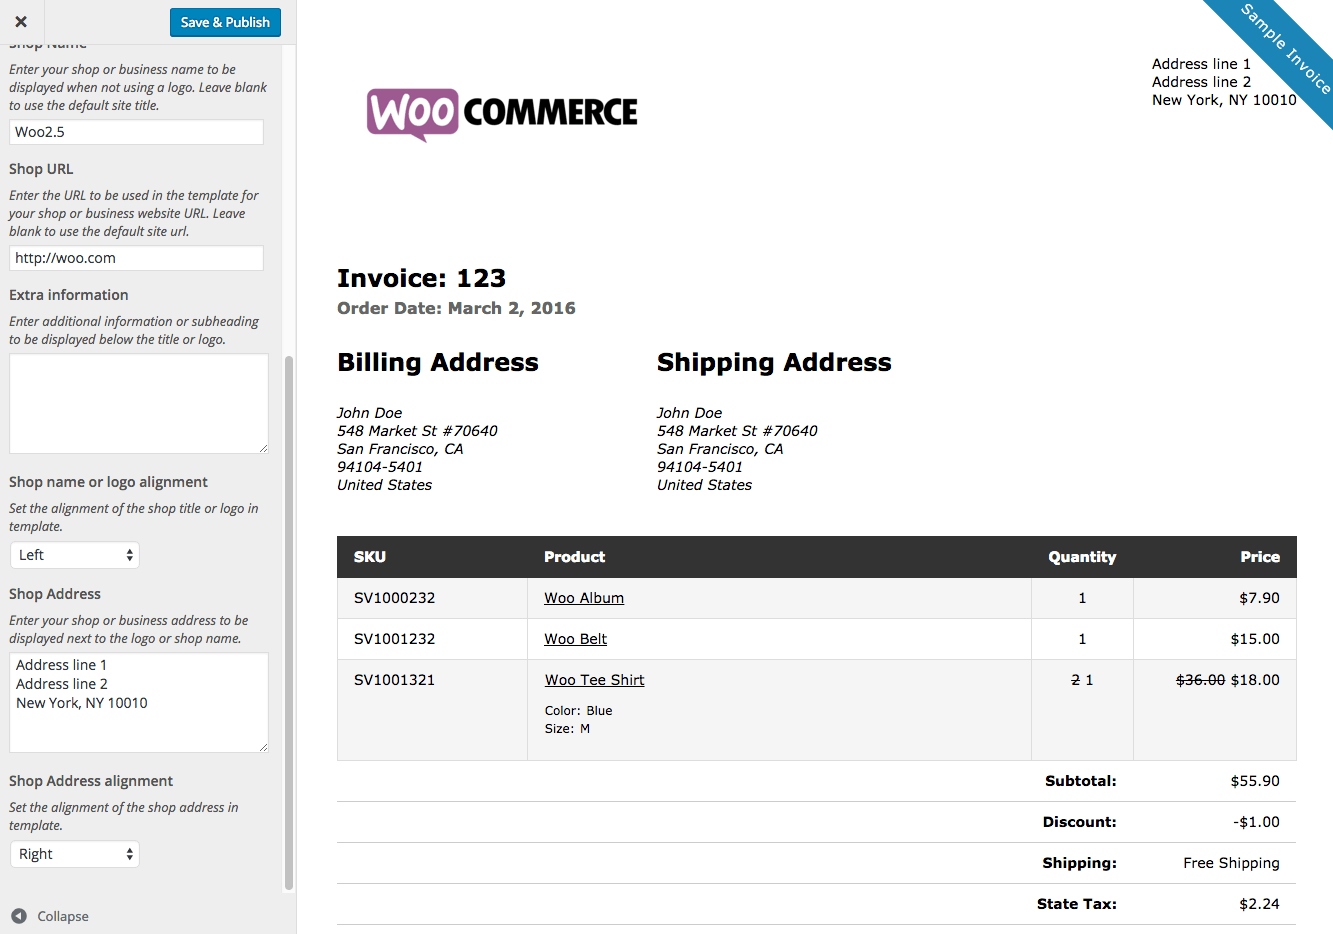 Shopdesignsus  Sweet Woocommerce Print Invoices Amp Packing Lists  Woocommerce Docs With Foxy Woocommerce Print Invoices  Packing Lists Customizer With Delectable Purchase Invoice Sample Also Quotation Purchase Order Invoice In Addition Basic Invoicing Software And Invoice For Sale As Well As Free Invoice Template Mac Additionally Software Invoices From Docswoocommercecom With Shopdesignsus  Foxy Woocommerce Print Invoices Amp Packing Lists  Woocommerce Docs With Delectable Woocommerce Print Invoices  Packing Lists Customizer And Sweet Purchase Invoice Sample Also Quotation Purchase Order Invoice In Addition Basic Invoicing Software From Docswoocommercecom